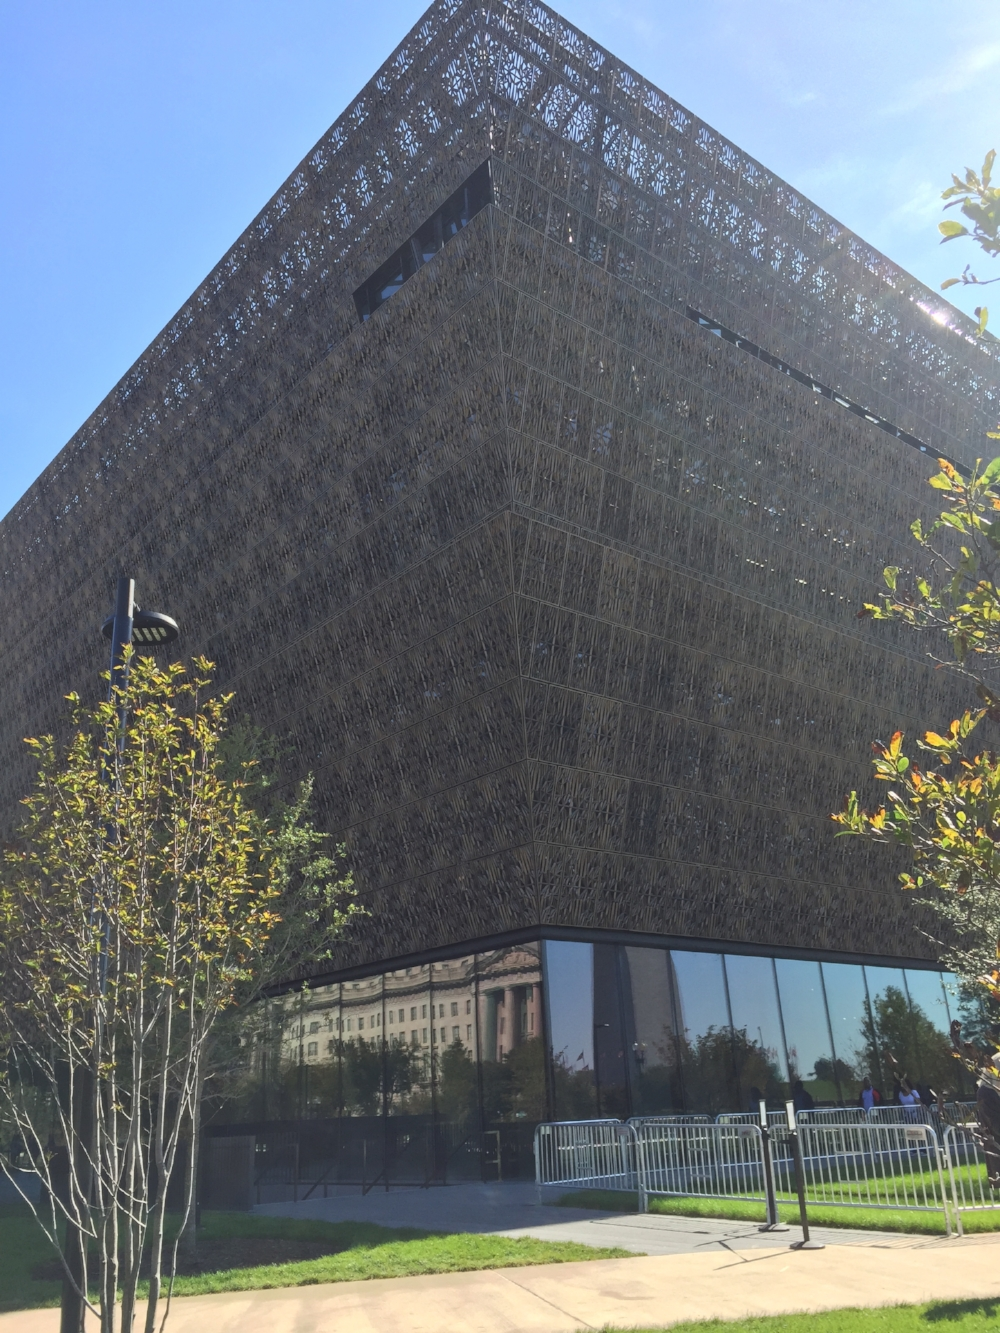 The newly opened National Museum of African-American History & Culture!